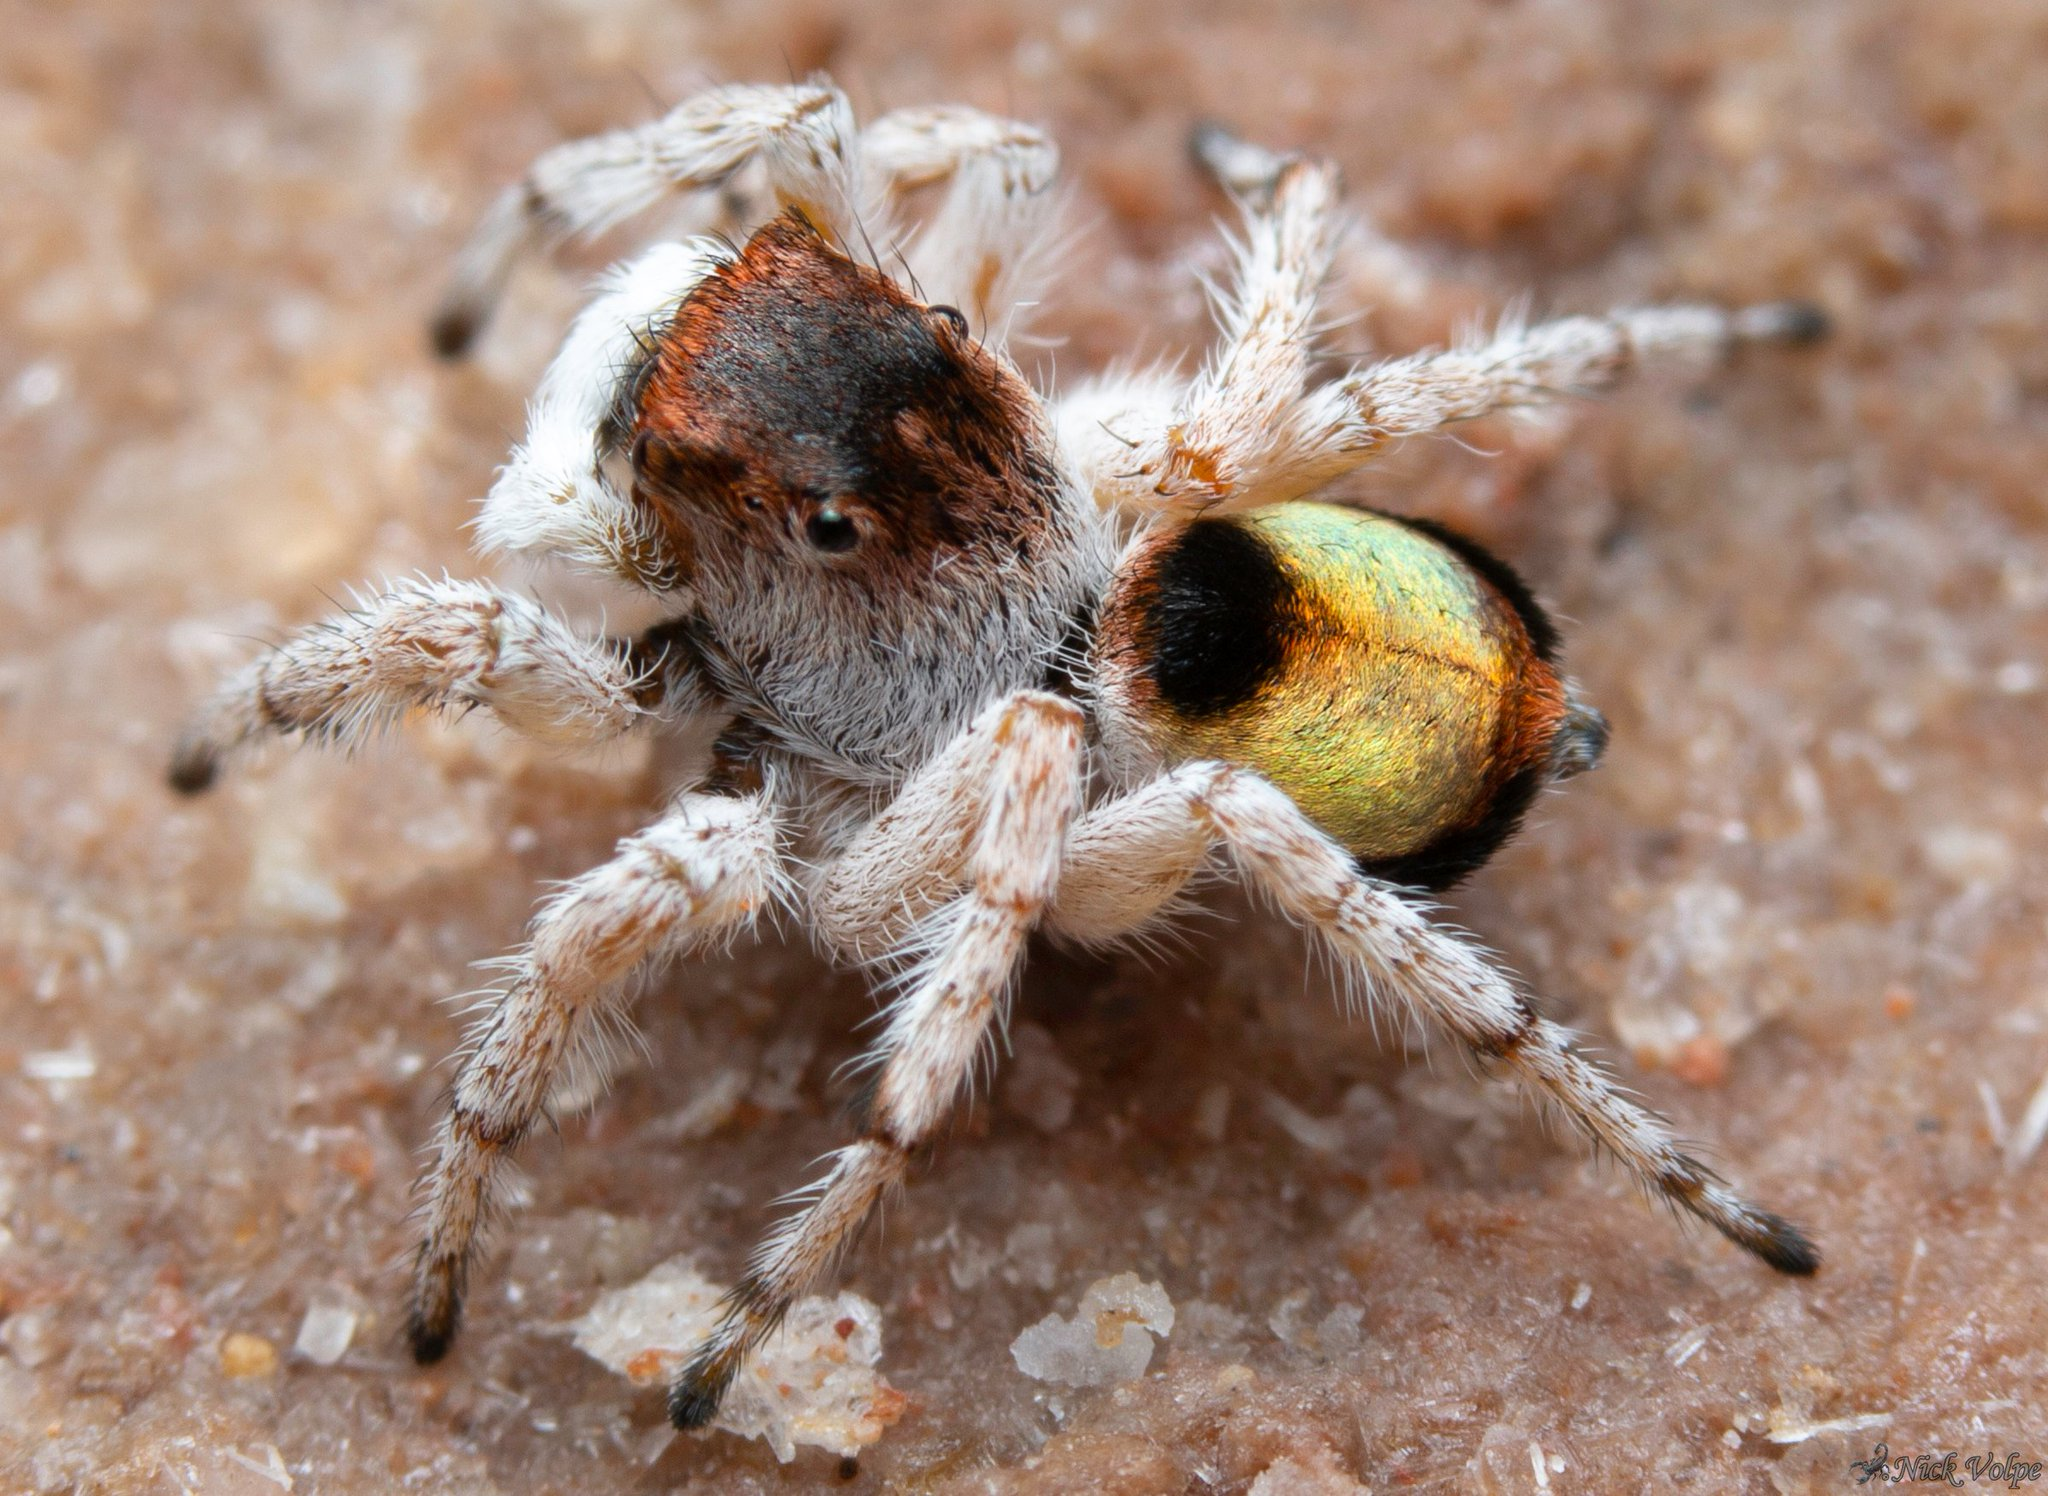 Arachnews: March 30, 2020